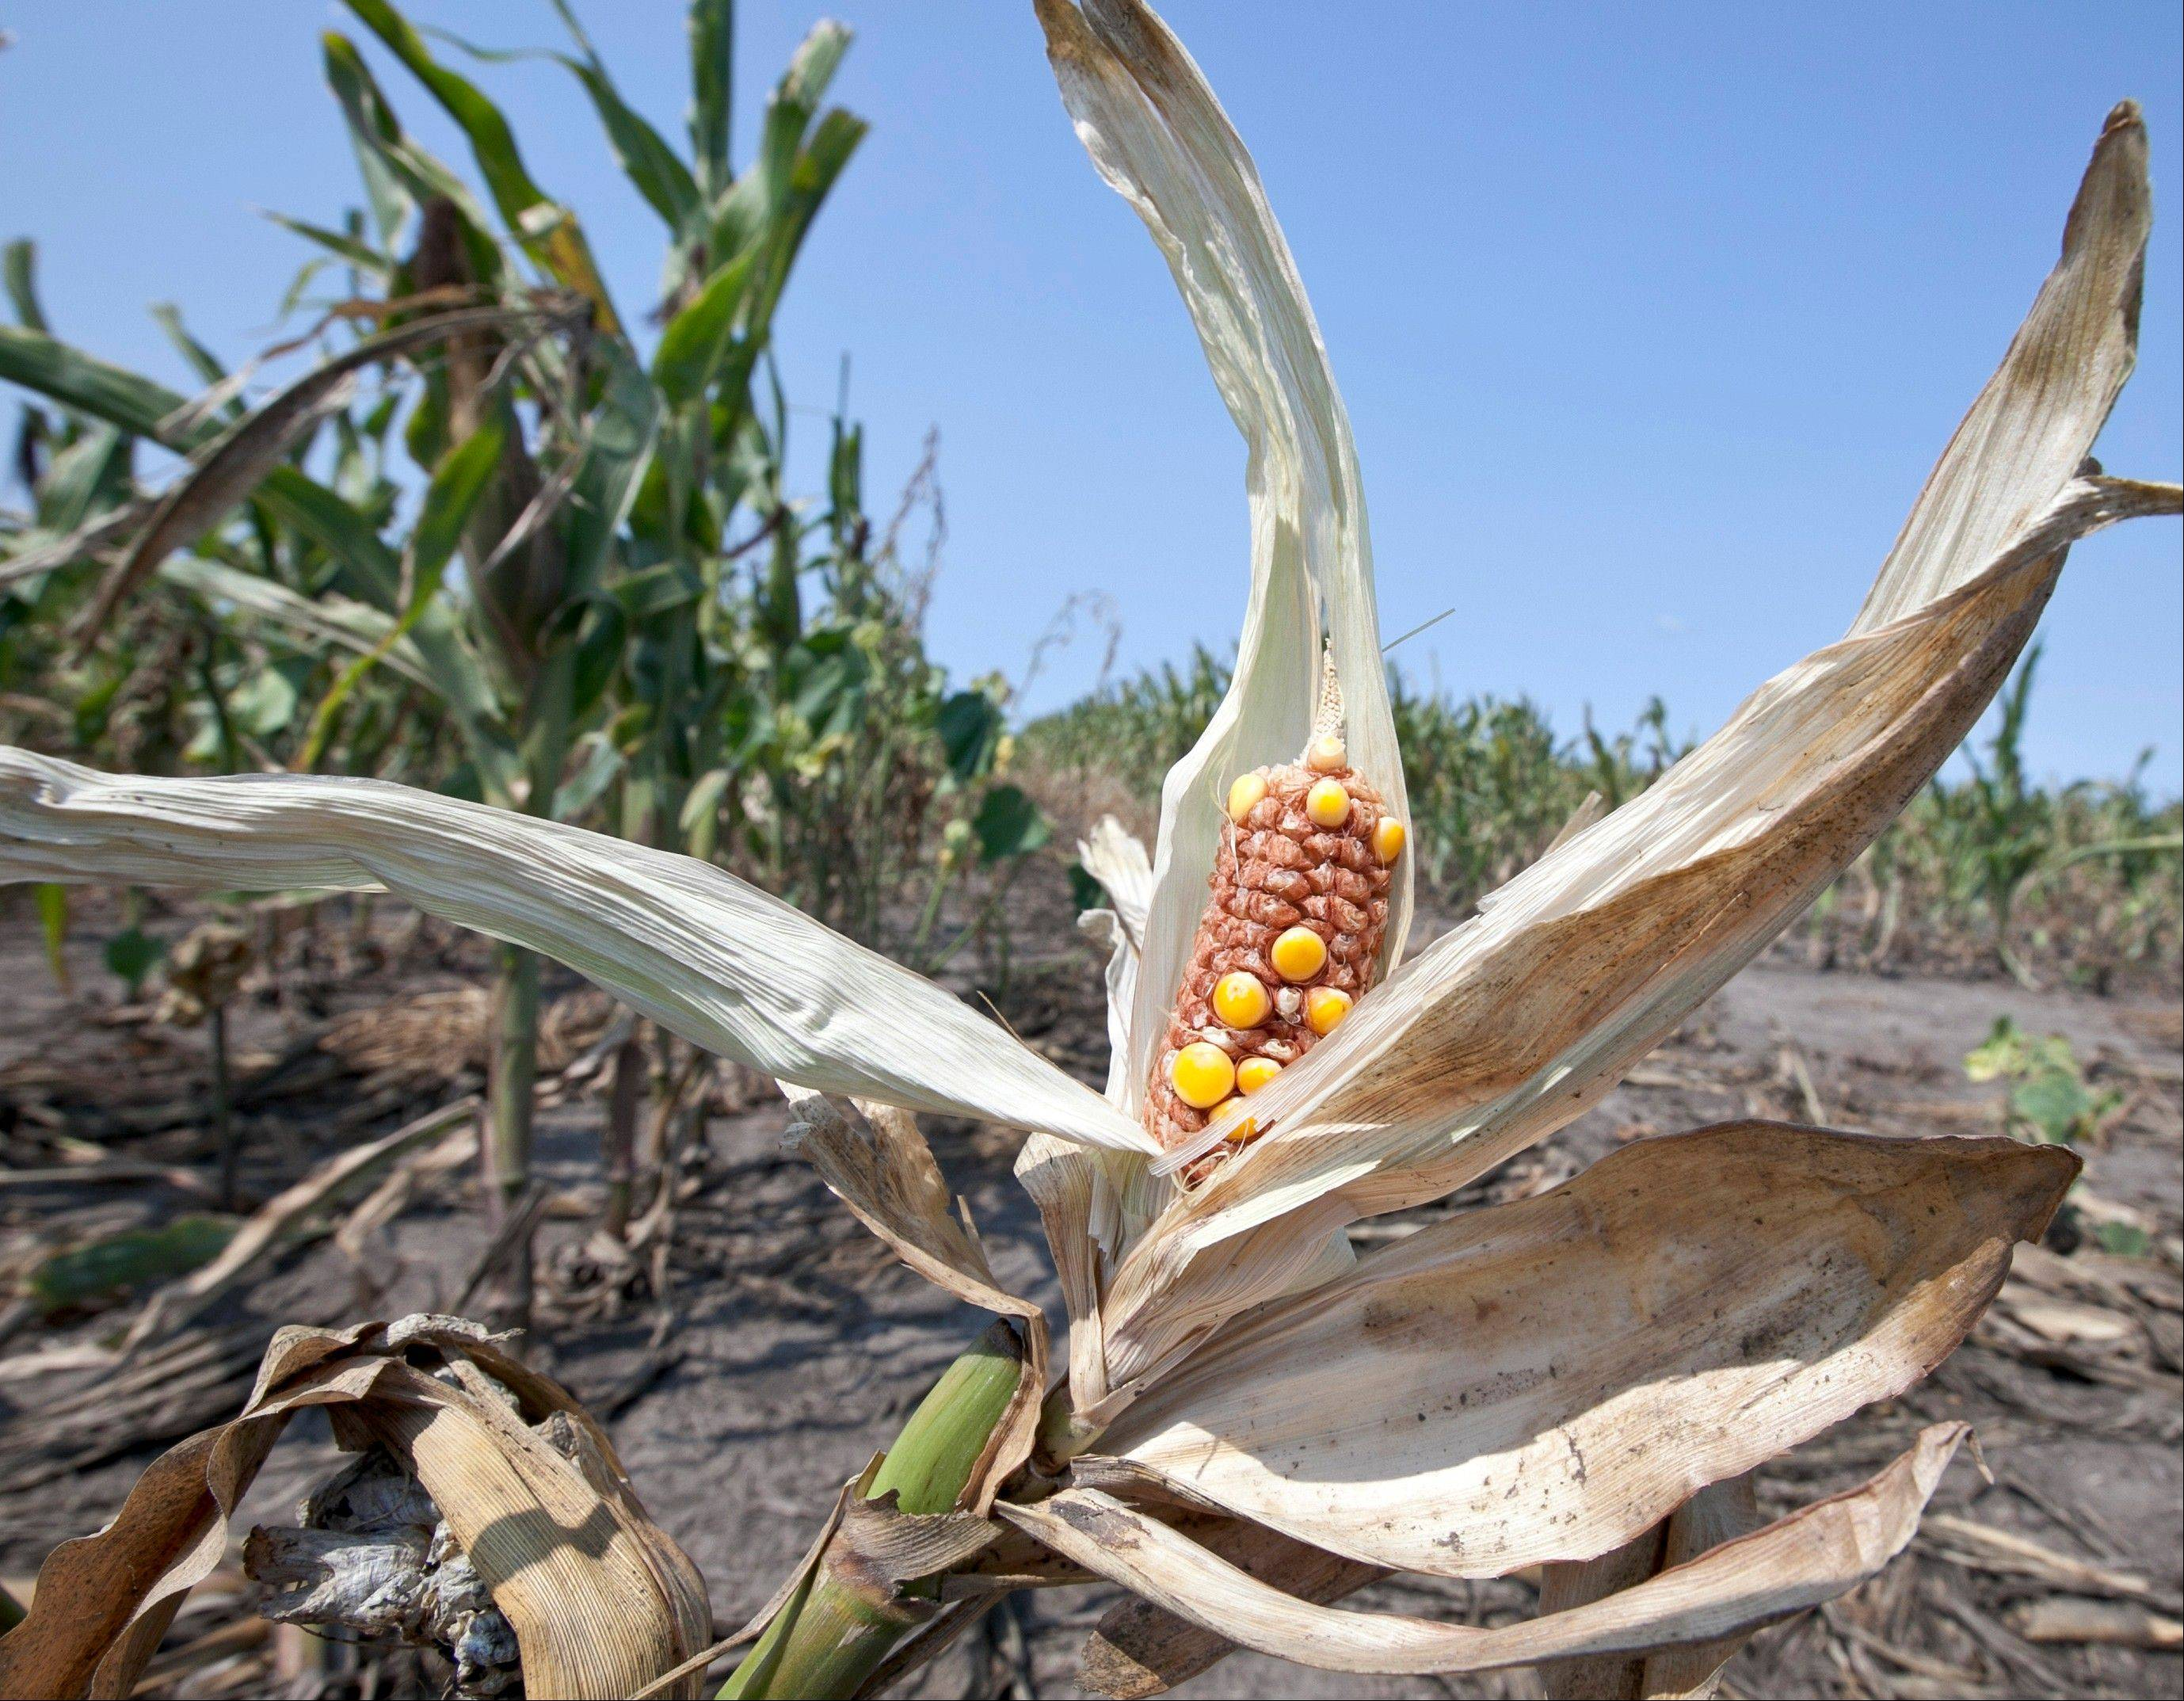 Associated Press/Aug. 16, 2012Drought-damaged corn is cooked by the sun in a field near Nickerson, Nebraska. A new federal science report looking at last year's Midwestern drought says it was a freak of nature that wasn't caused by man-made global warming.